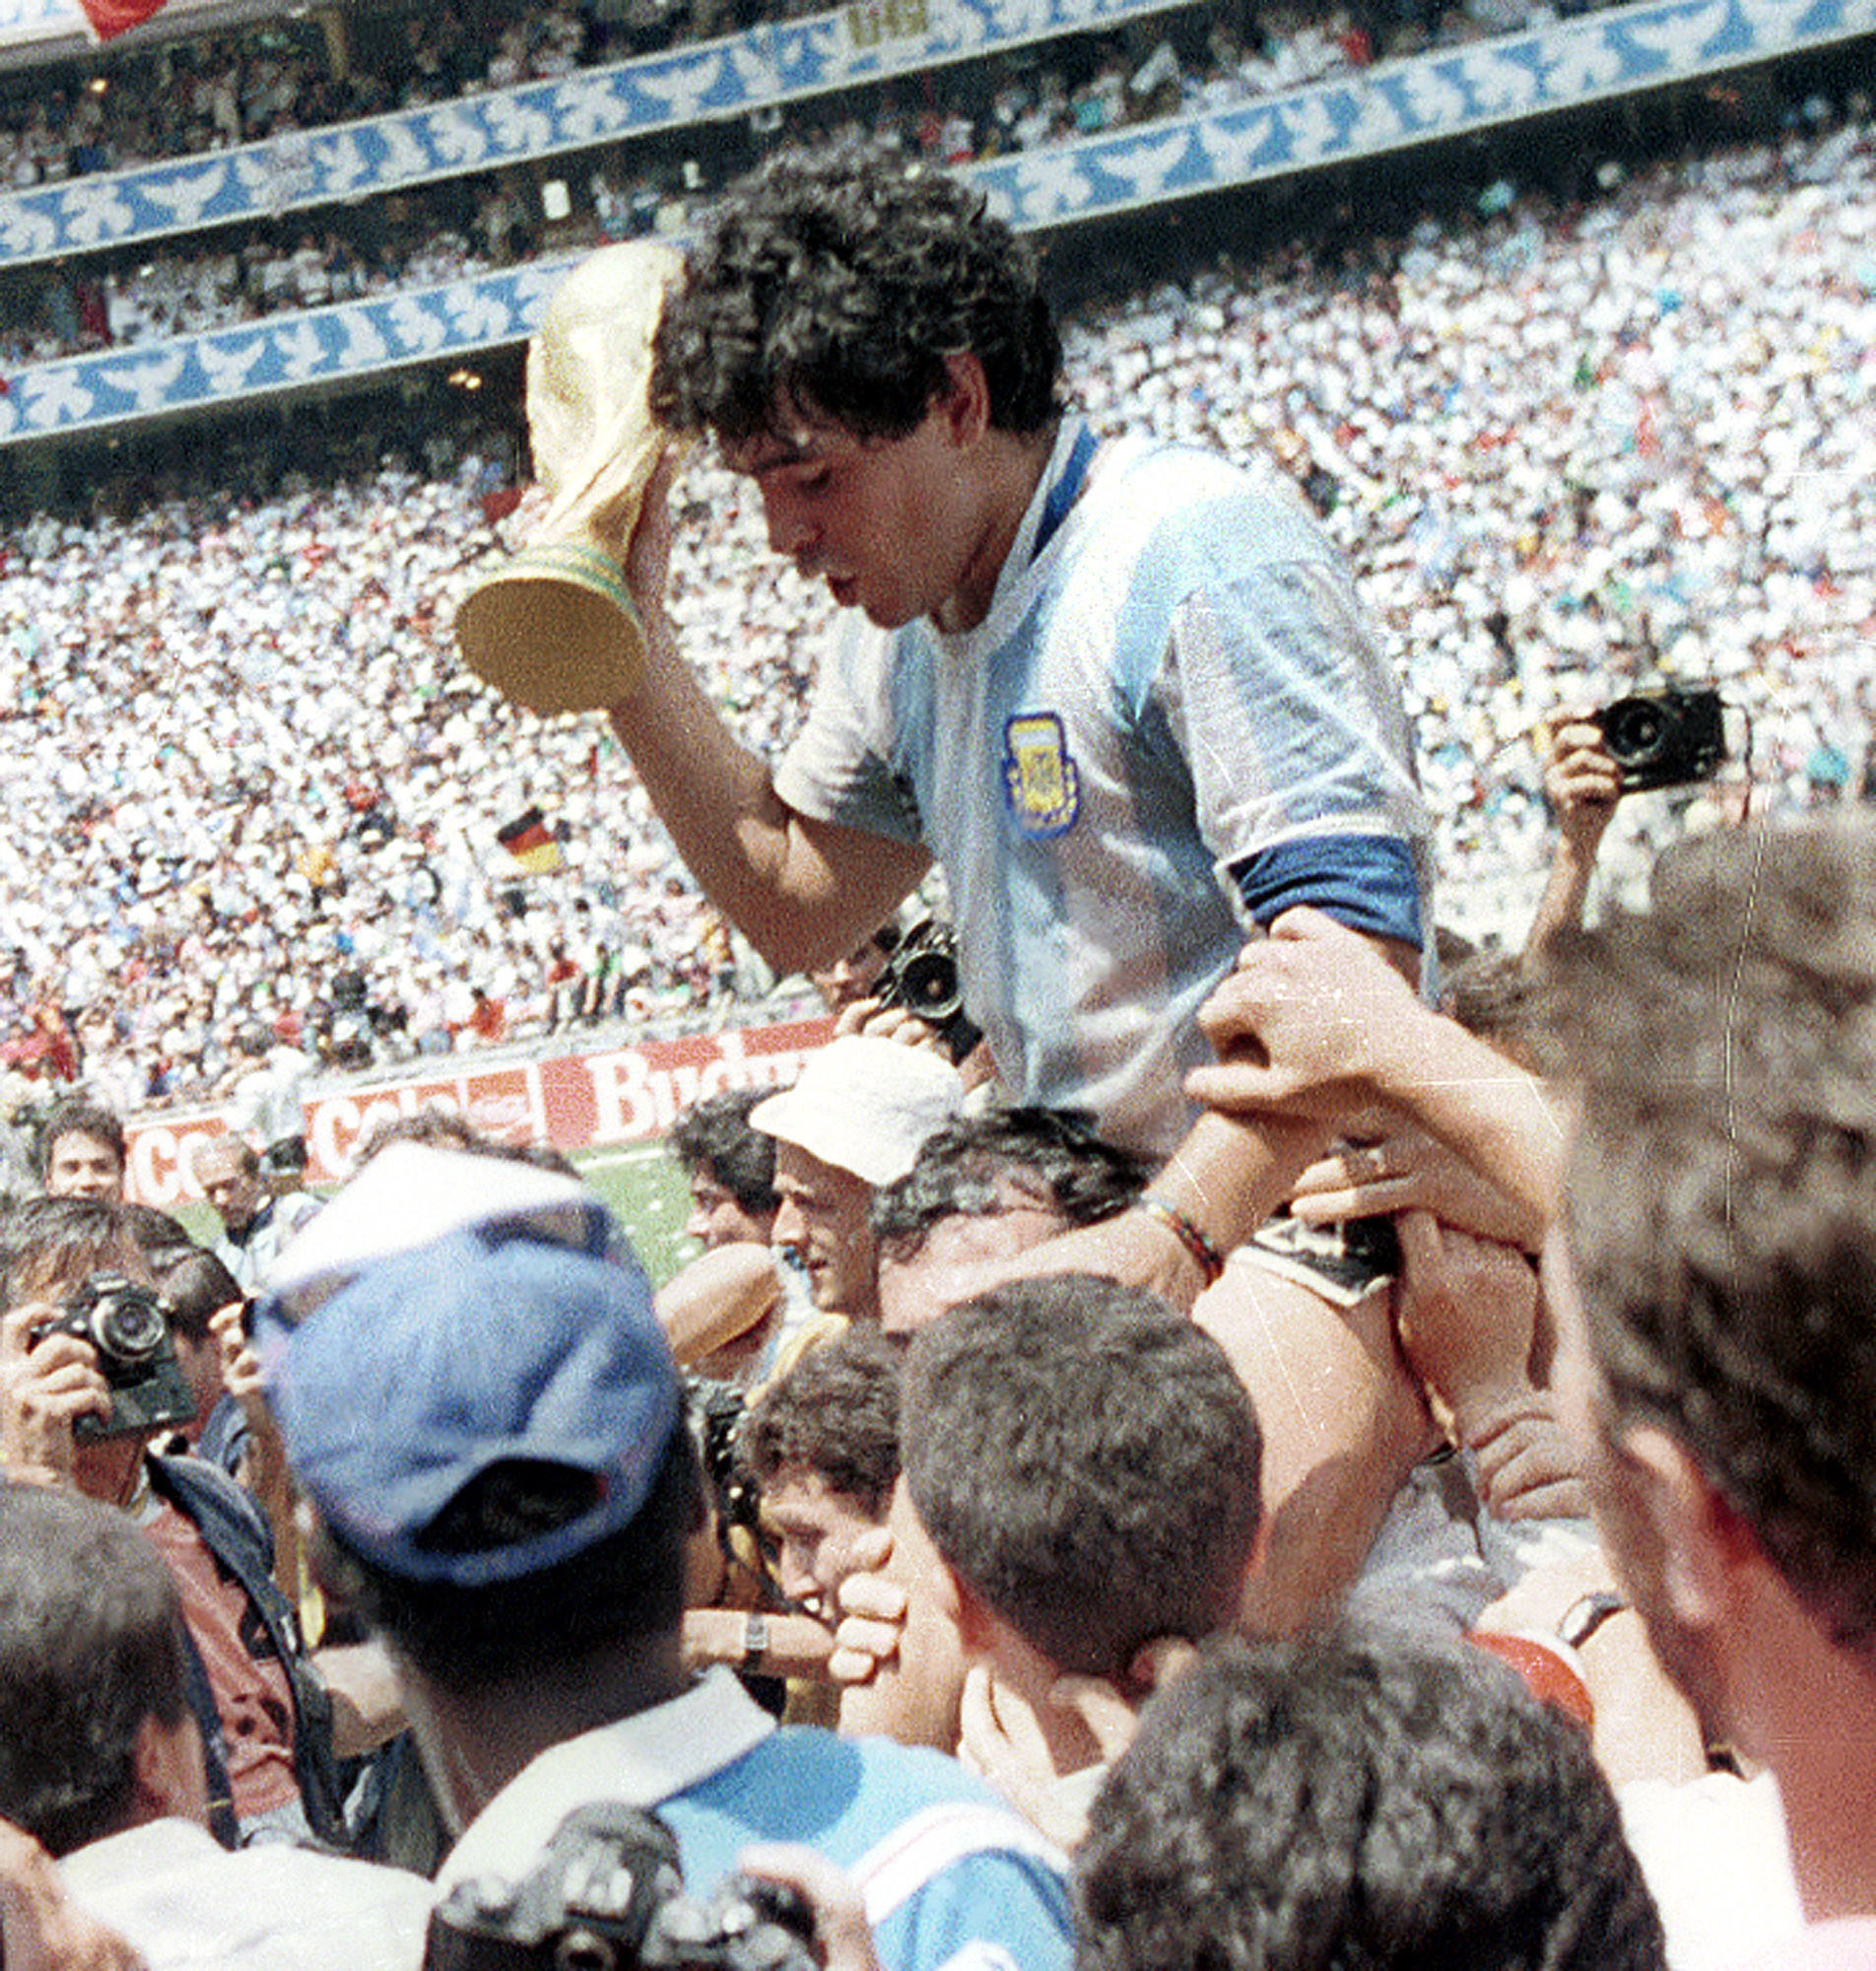 Diego Maradona holds the World Cup trophy at the Azteca stadium in Mexico City.